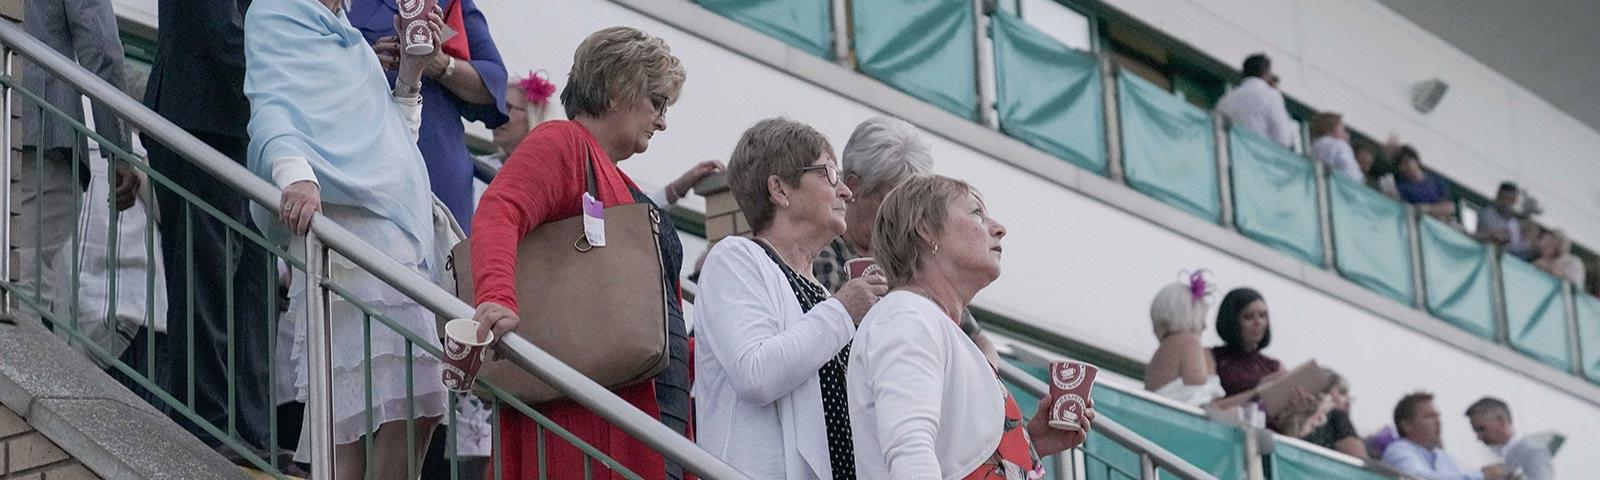 Group of racegoers standing in the grandstand while at the races.